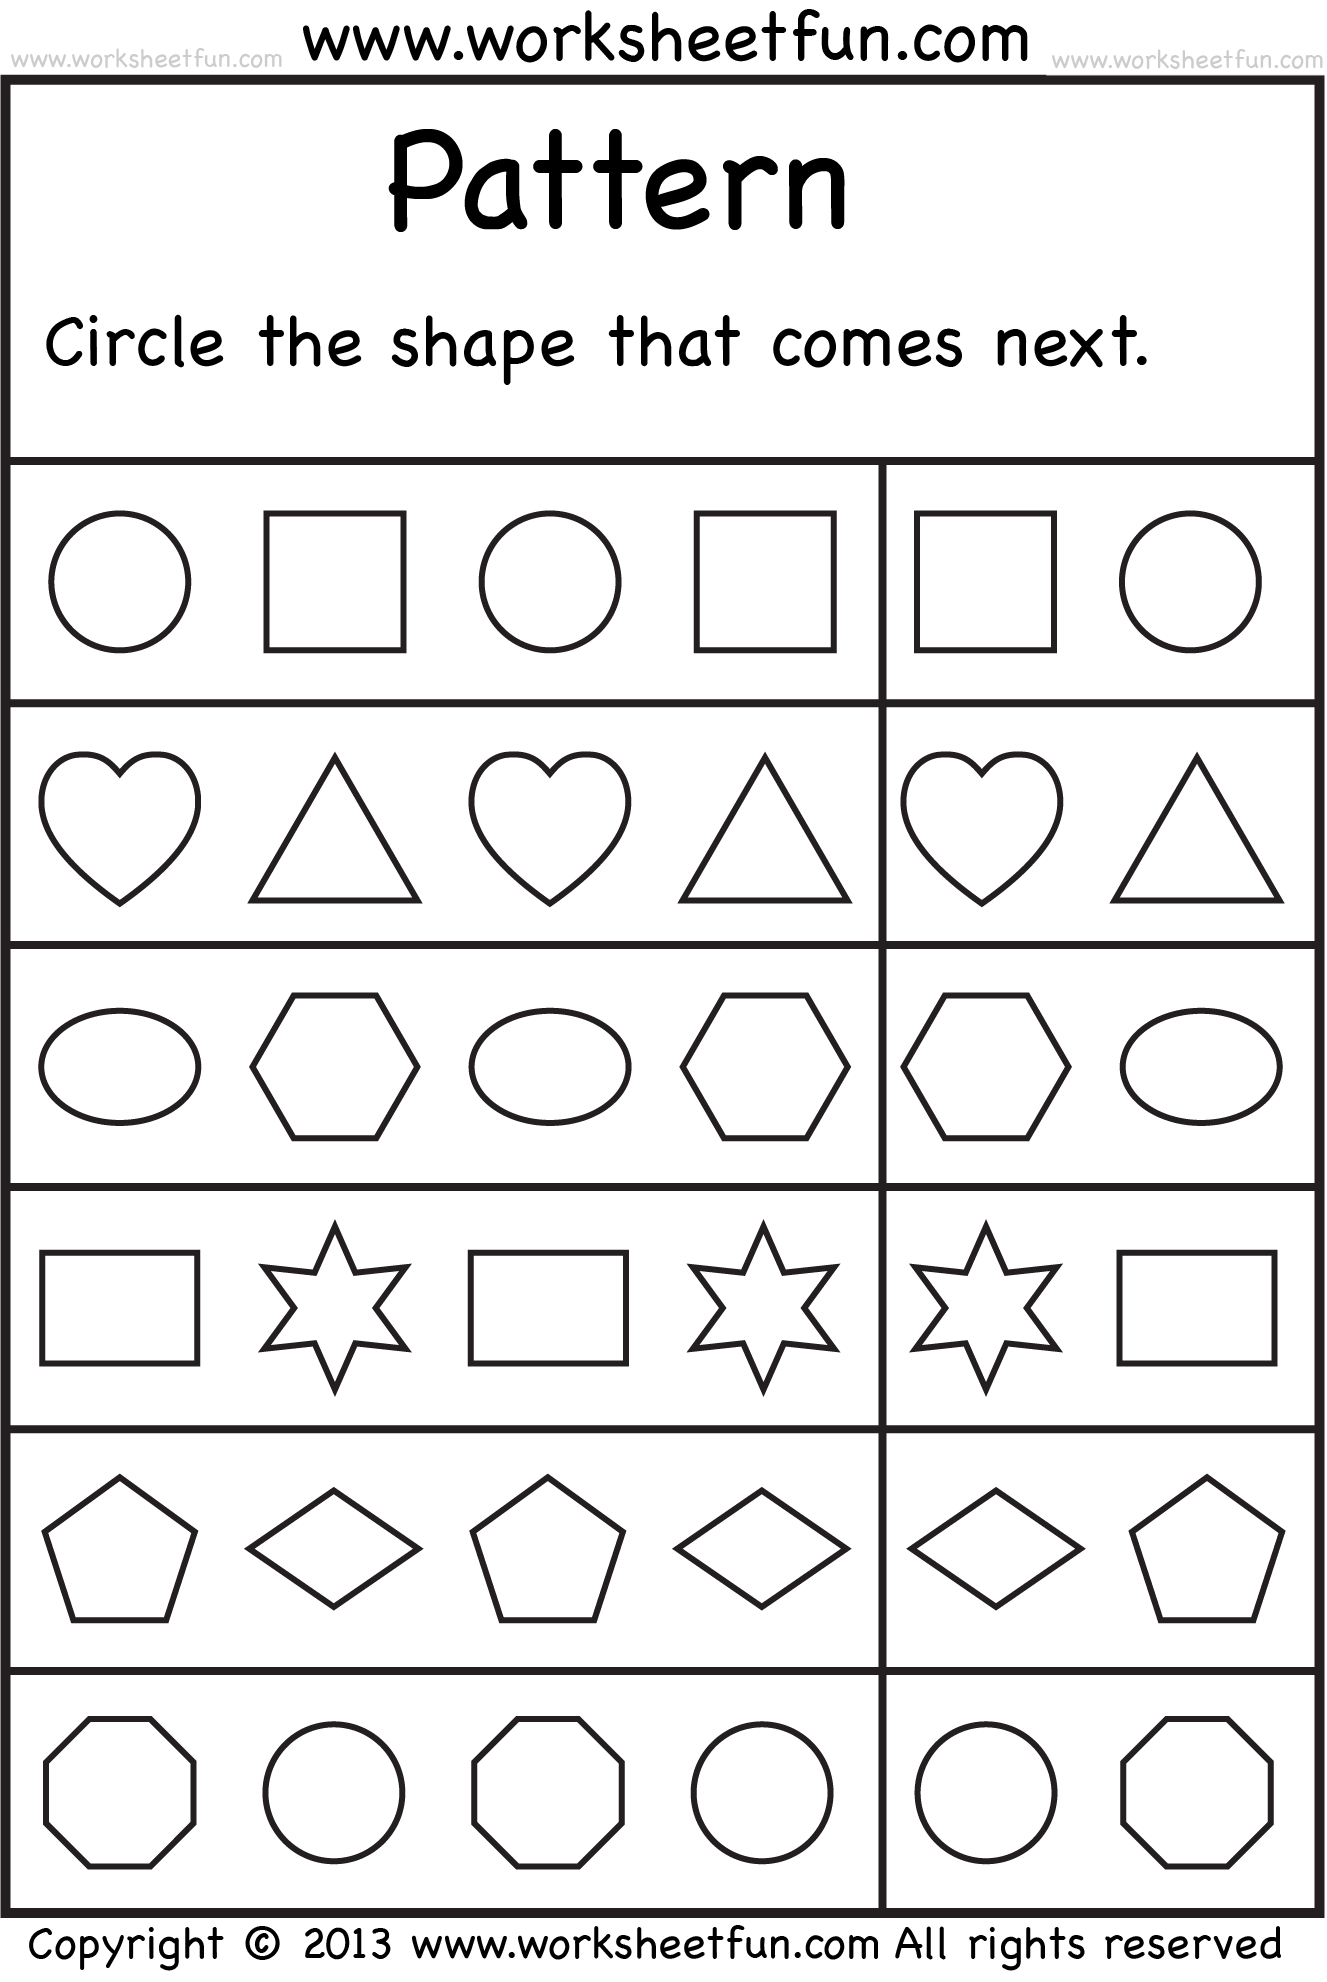 Weirdmailus  Pretty  Images About School Worksheets On Pinterest  Number Words  With Engaging  Images About School Worksheets On Pinterest  Number Words Alphabet Worksheets And Free Printable Kindergarten Worksheets With Enchanting Multiplication Table Blank Worksheet Also Daily Language Practice Worksheets In Addition Grade  Social Science Worksheets And Simile And Metaphor Worksheets For Middle School As Well As Worksheets For Year  Maths Additionally Simplifying Fractions Worksheets Pdf From Pinterestcom With Weirdmailus  Engaging  Images About School Worksheets On Pinterest  Number Words  With Enchanting  Images About School Worksheets On Pinterest  Number Words Alphabet Worksheets And Free Printable Kindergarten Worksheets And Pretty Multiplication Table Blank Worksheet Also Daily Language Practice Worksheets In Addition Grade  Social Science Worksheets From Pinterestcom